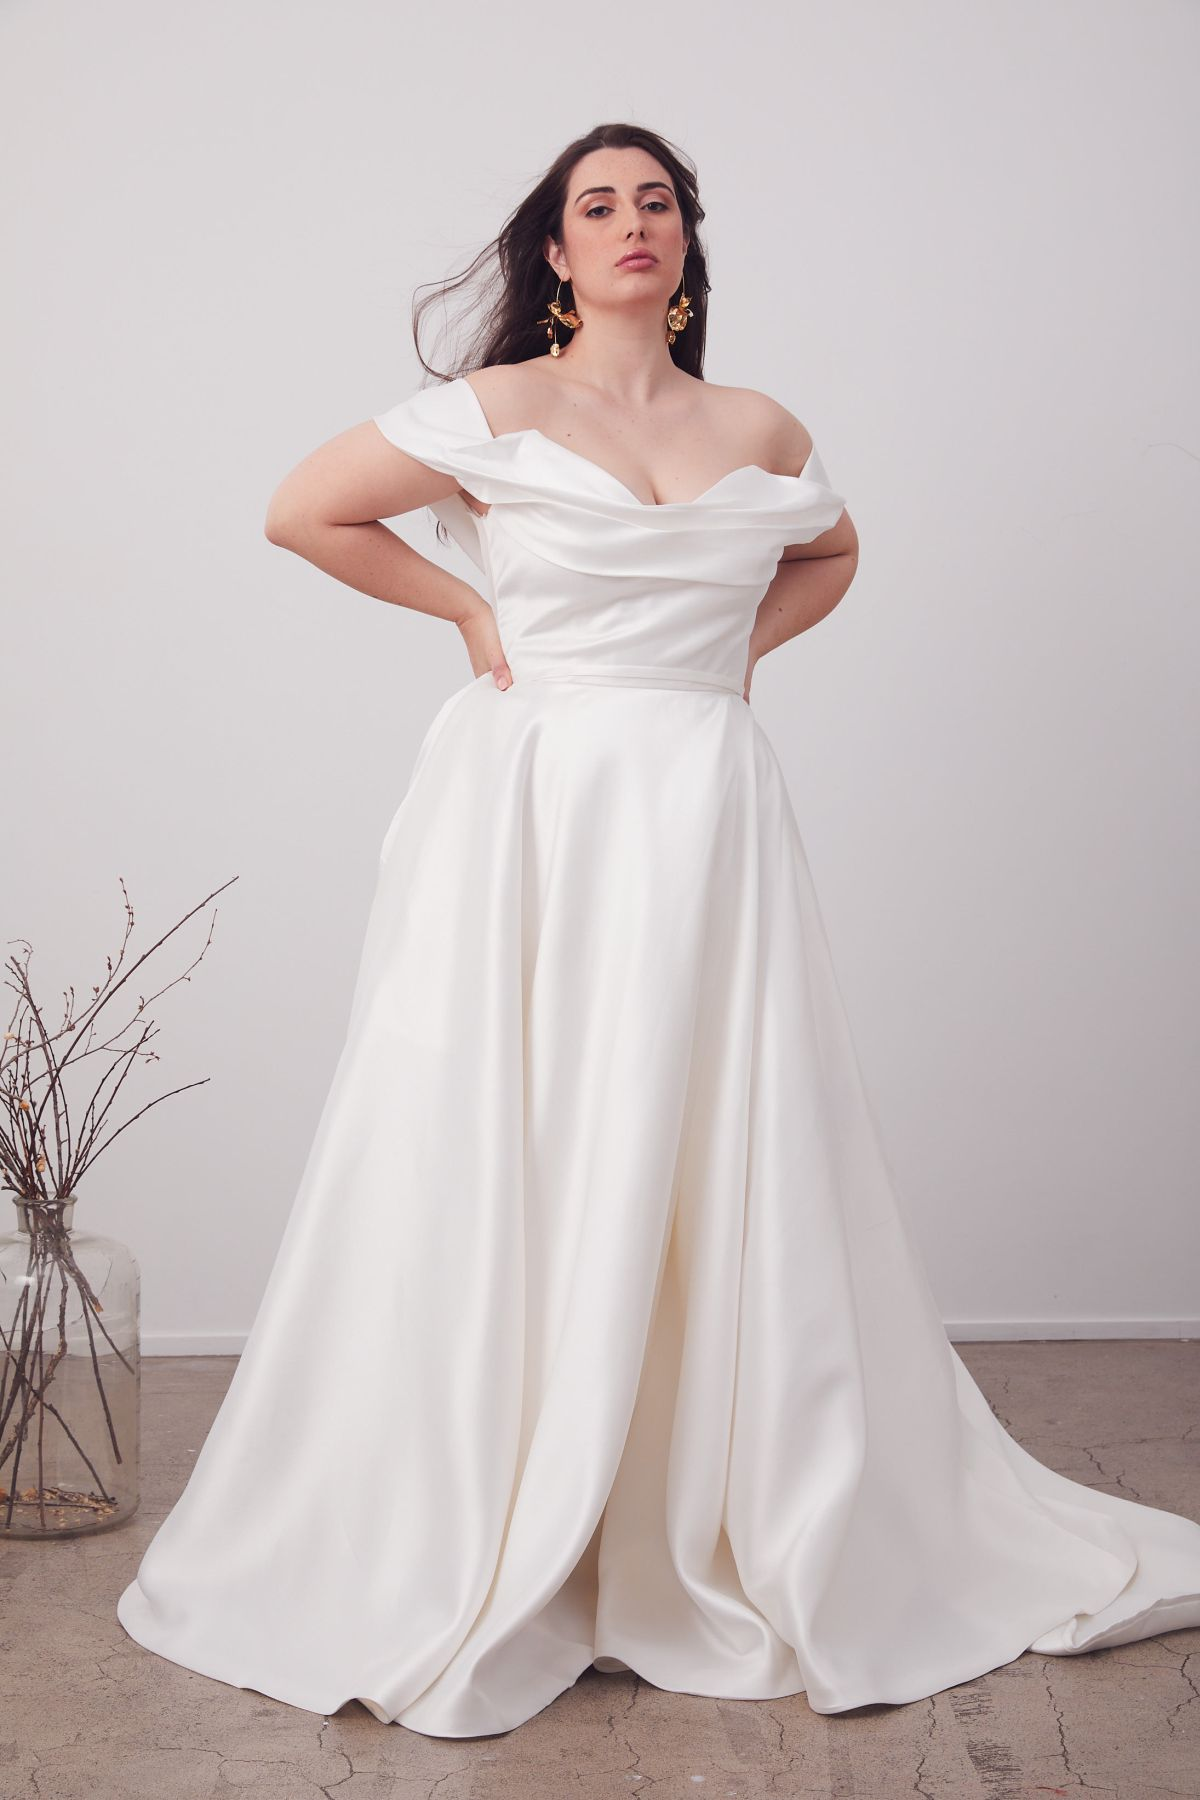 LeBelle_Hera_Couture_Cruve_Collection_Brisbane_WhiteLilyCouture (2)